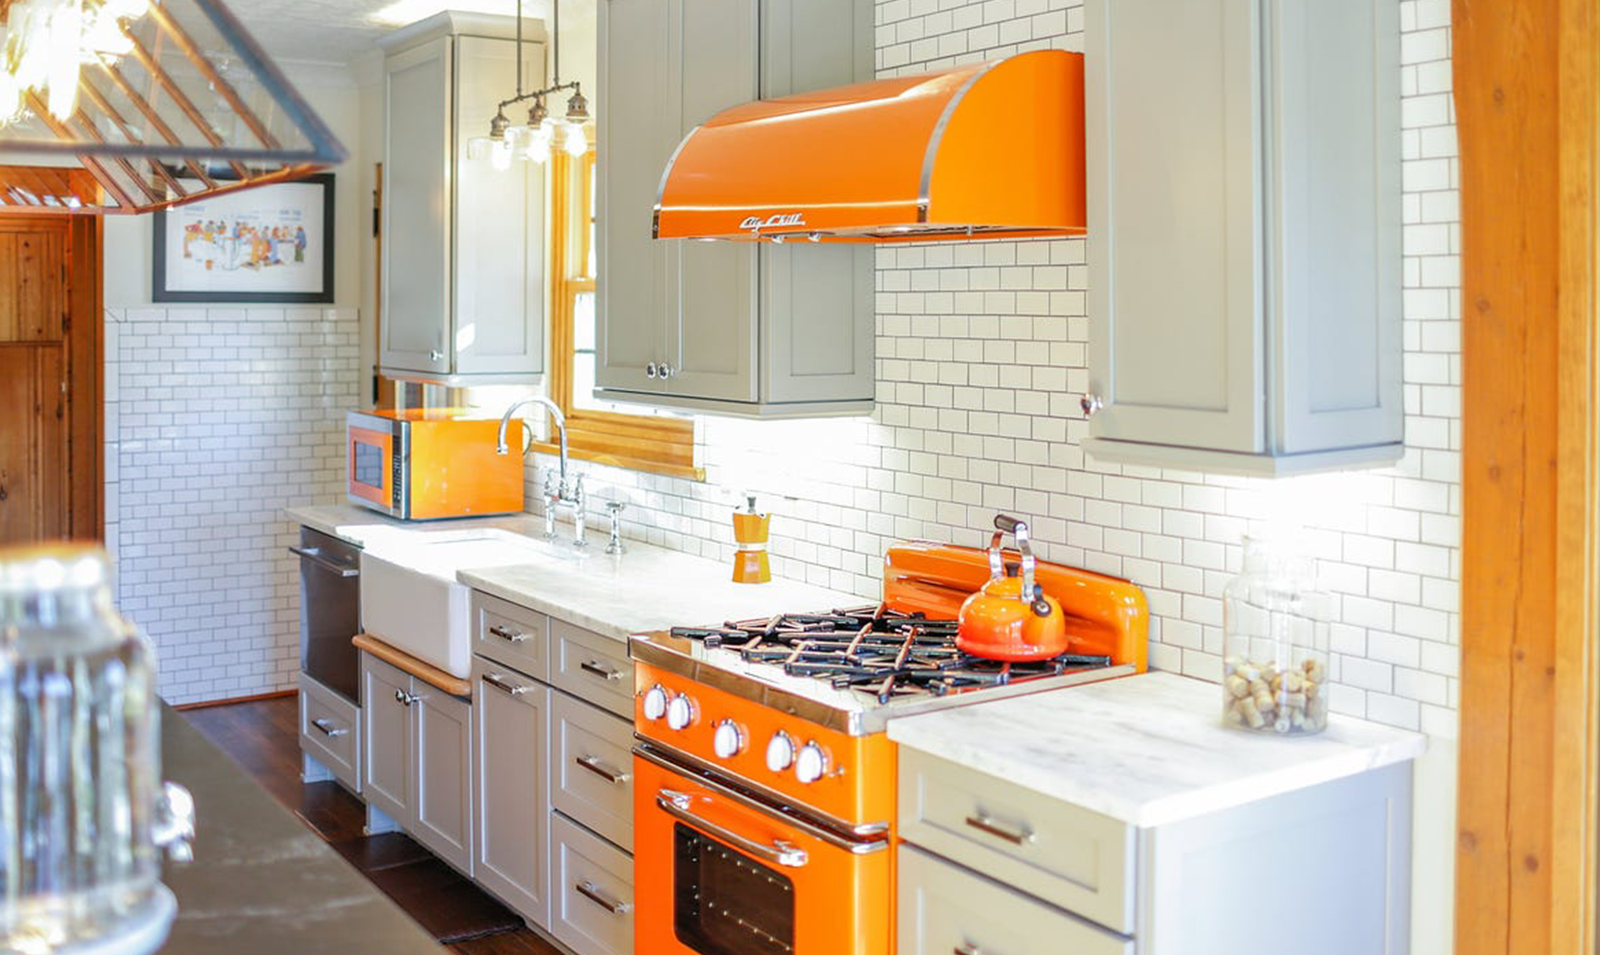 kitchen-with-orange-appliances